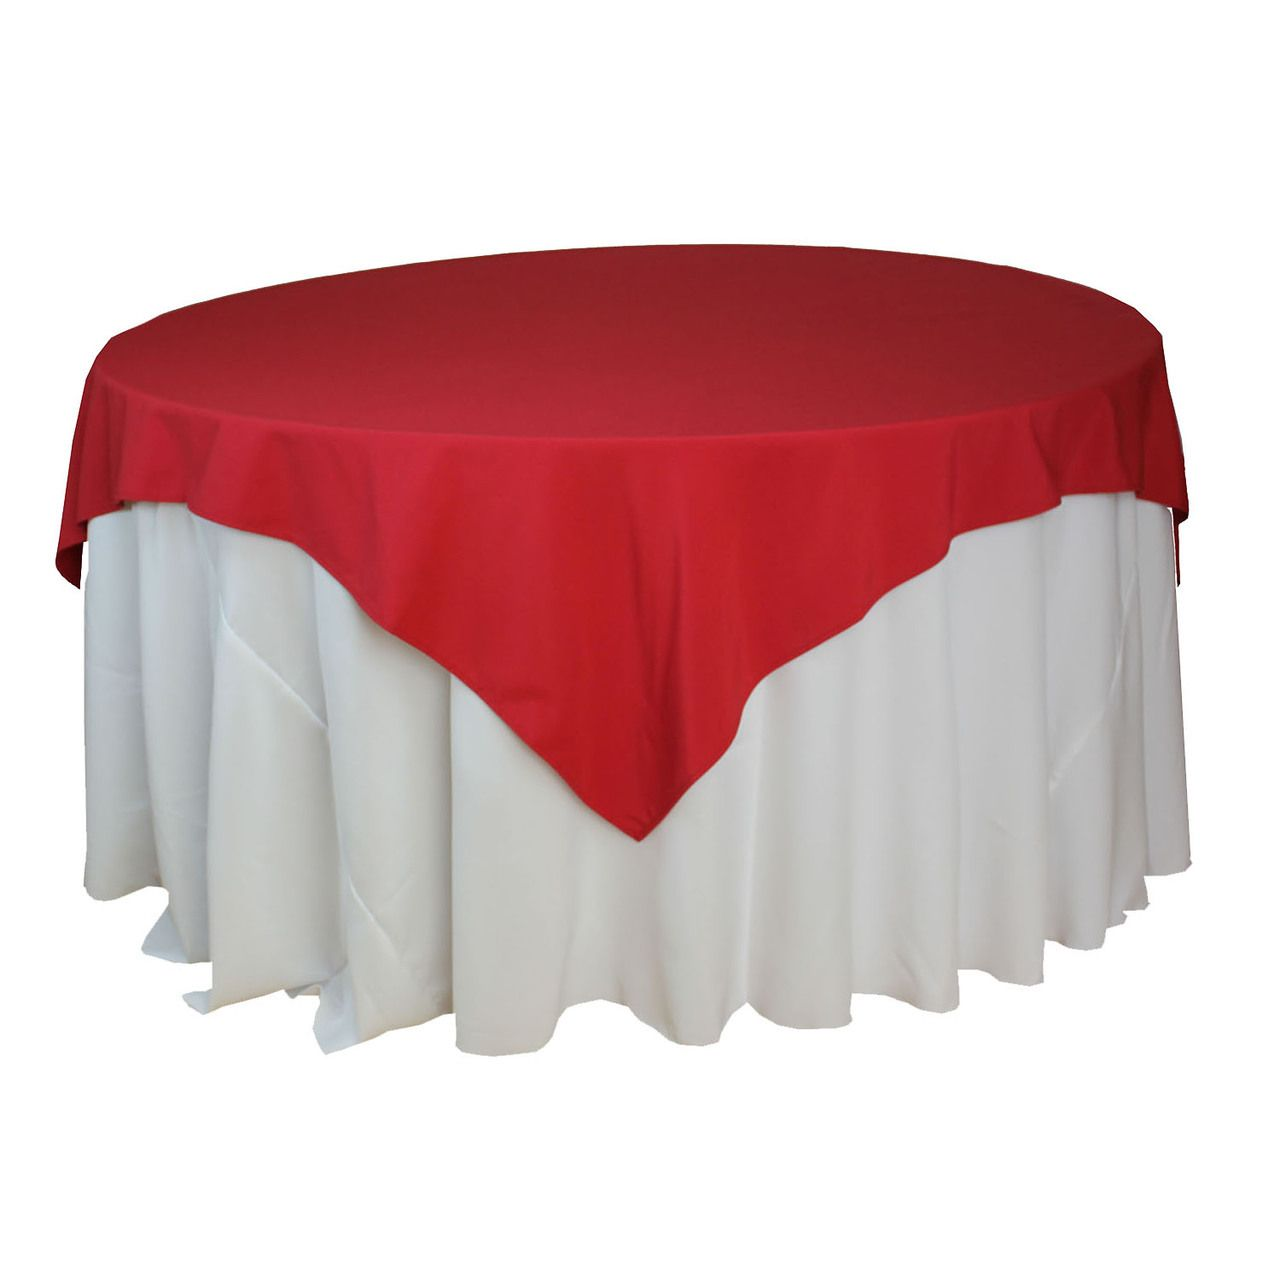 RED TABLECLOTHS FOR WEDDINGS. 72 X 72 Inch Square Table Cloths For Hotels  And Events. Bulk Discounts Are Available For Commercial Clients.